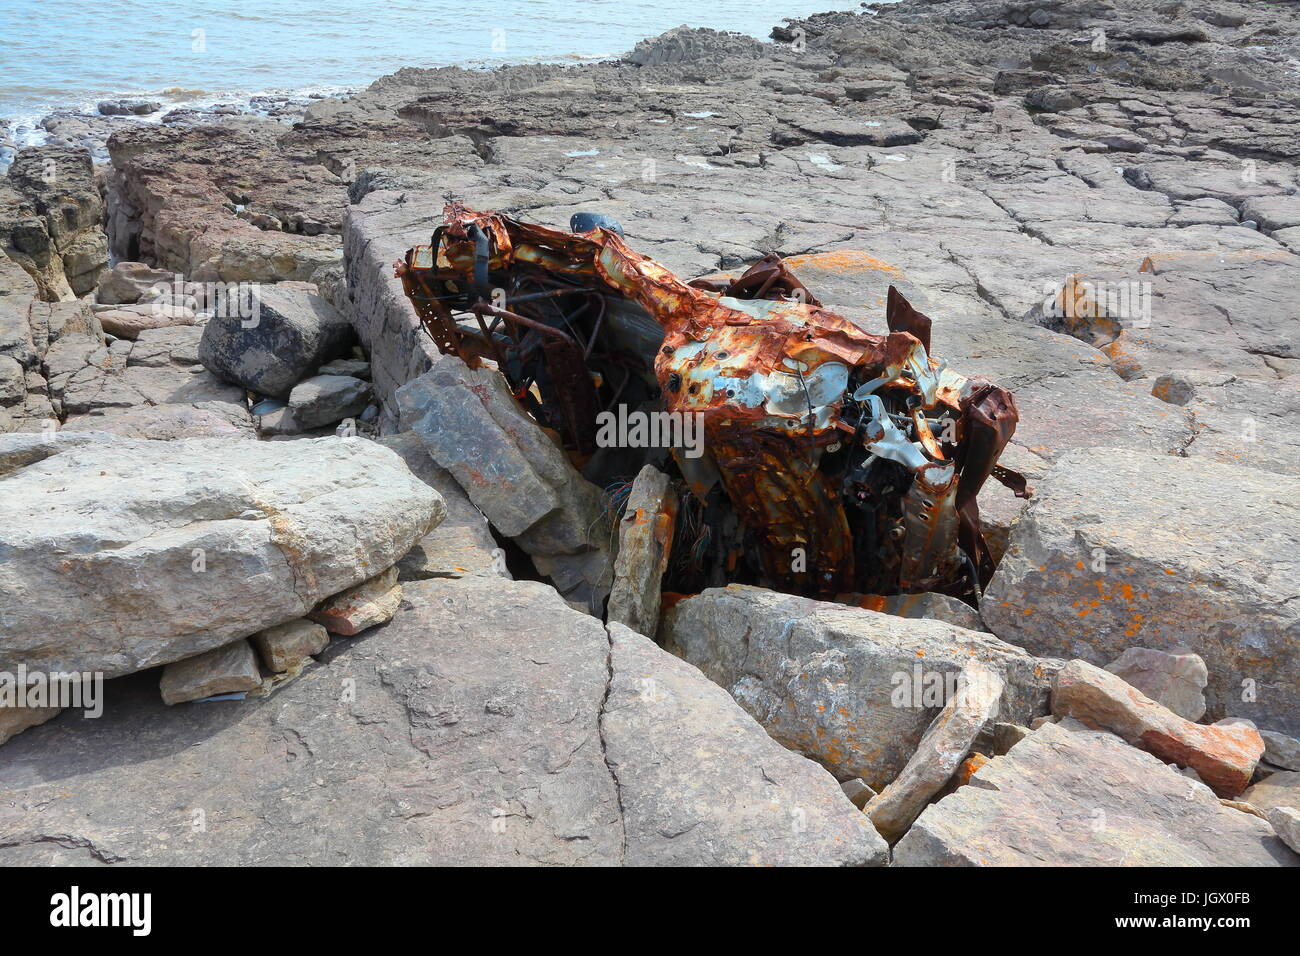 A Beach buggy totally wedged into a rock crevice and held tight by huge boulders just above the high water mark - Stock Image